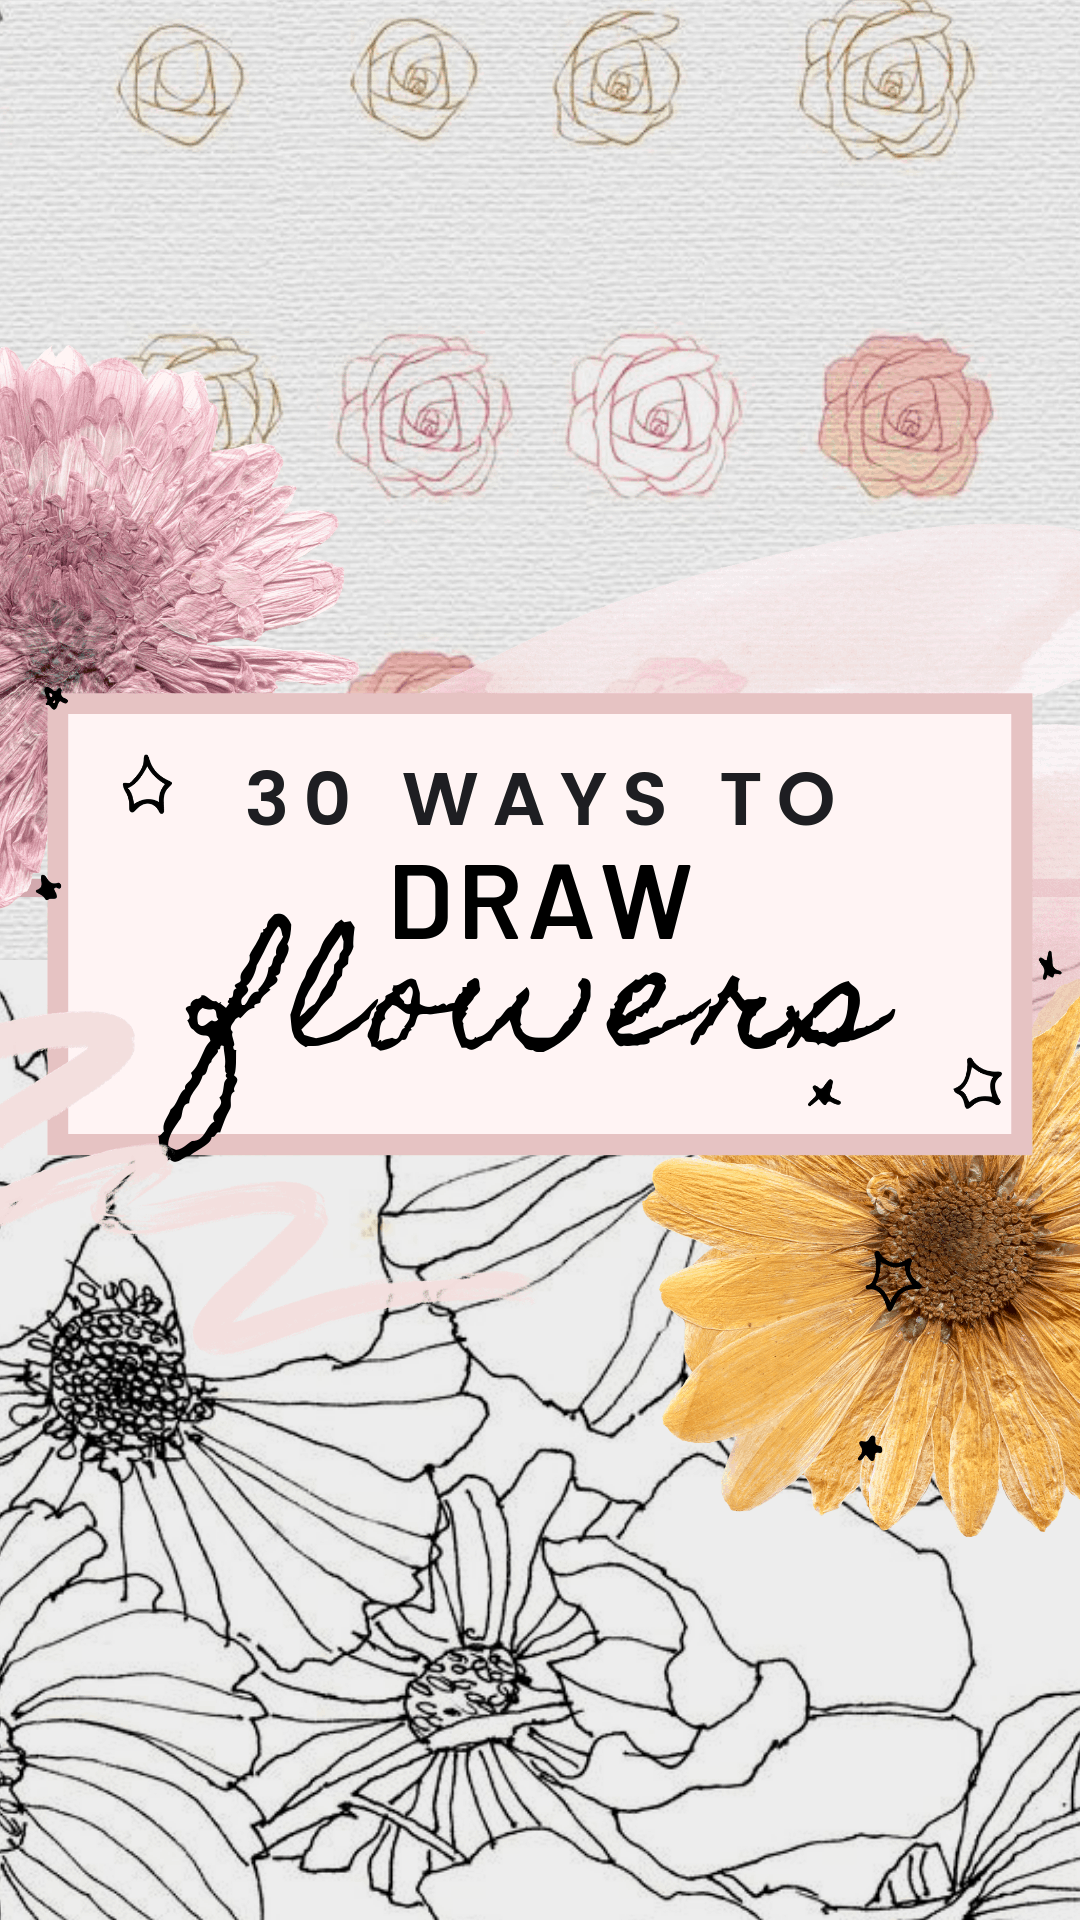 30 Ways to Draw Flowers